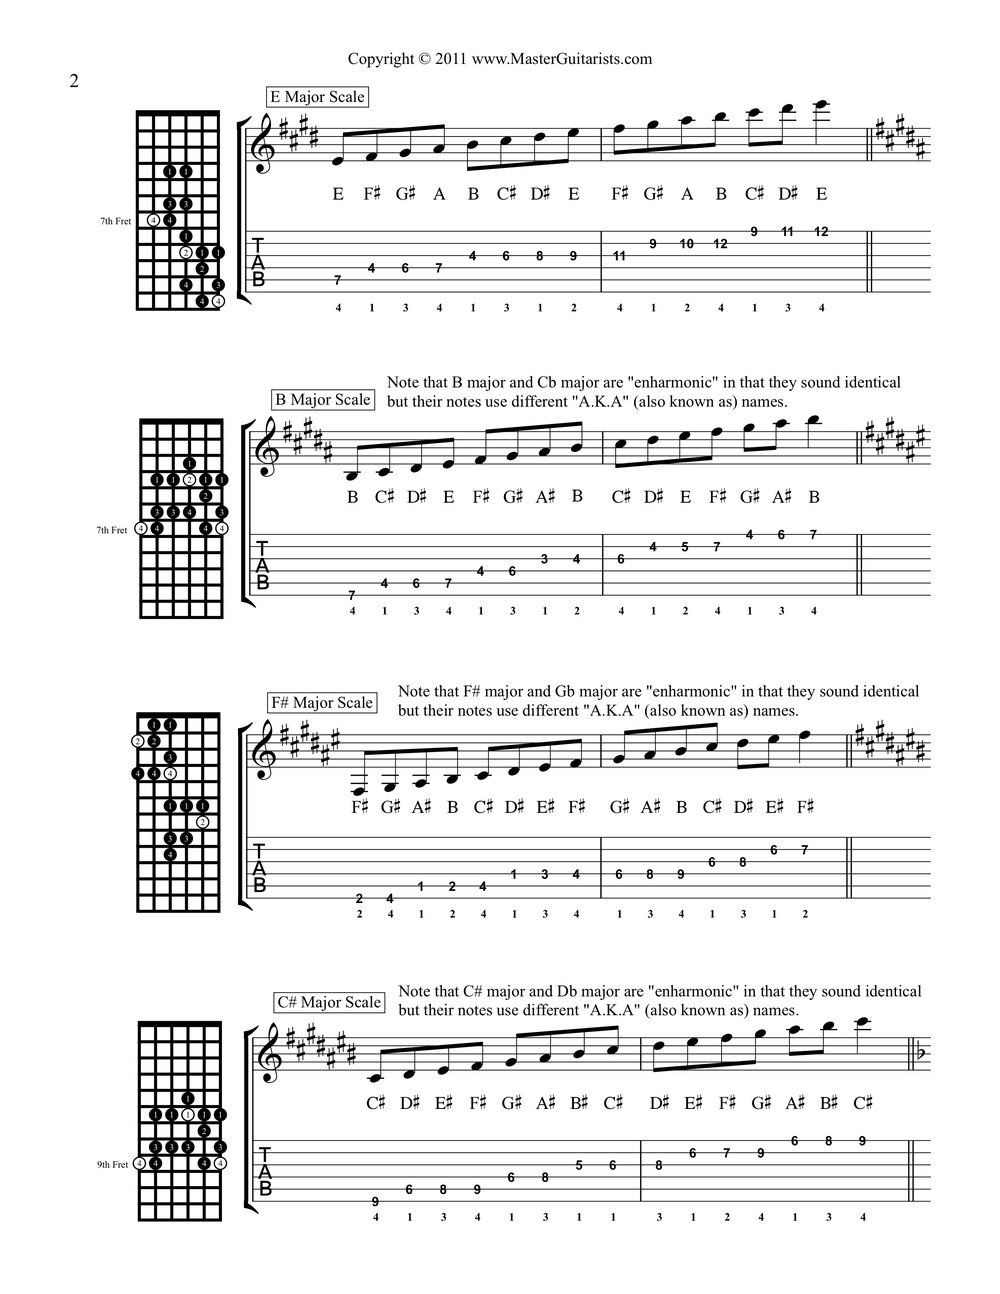 15 Two Octave Fingerings For The Major Scale1318212833 2-2.jpeg